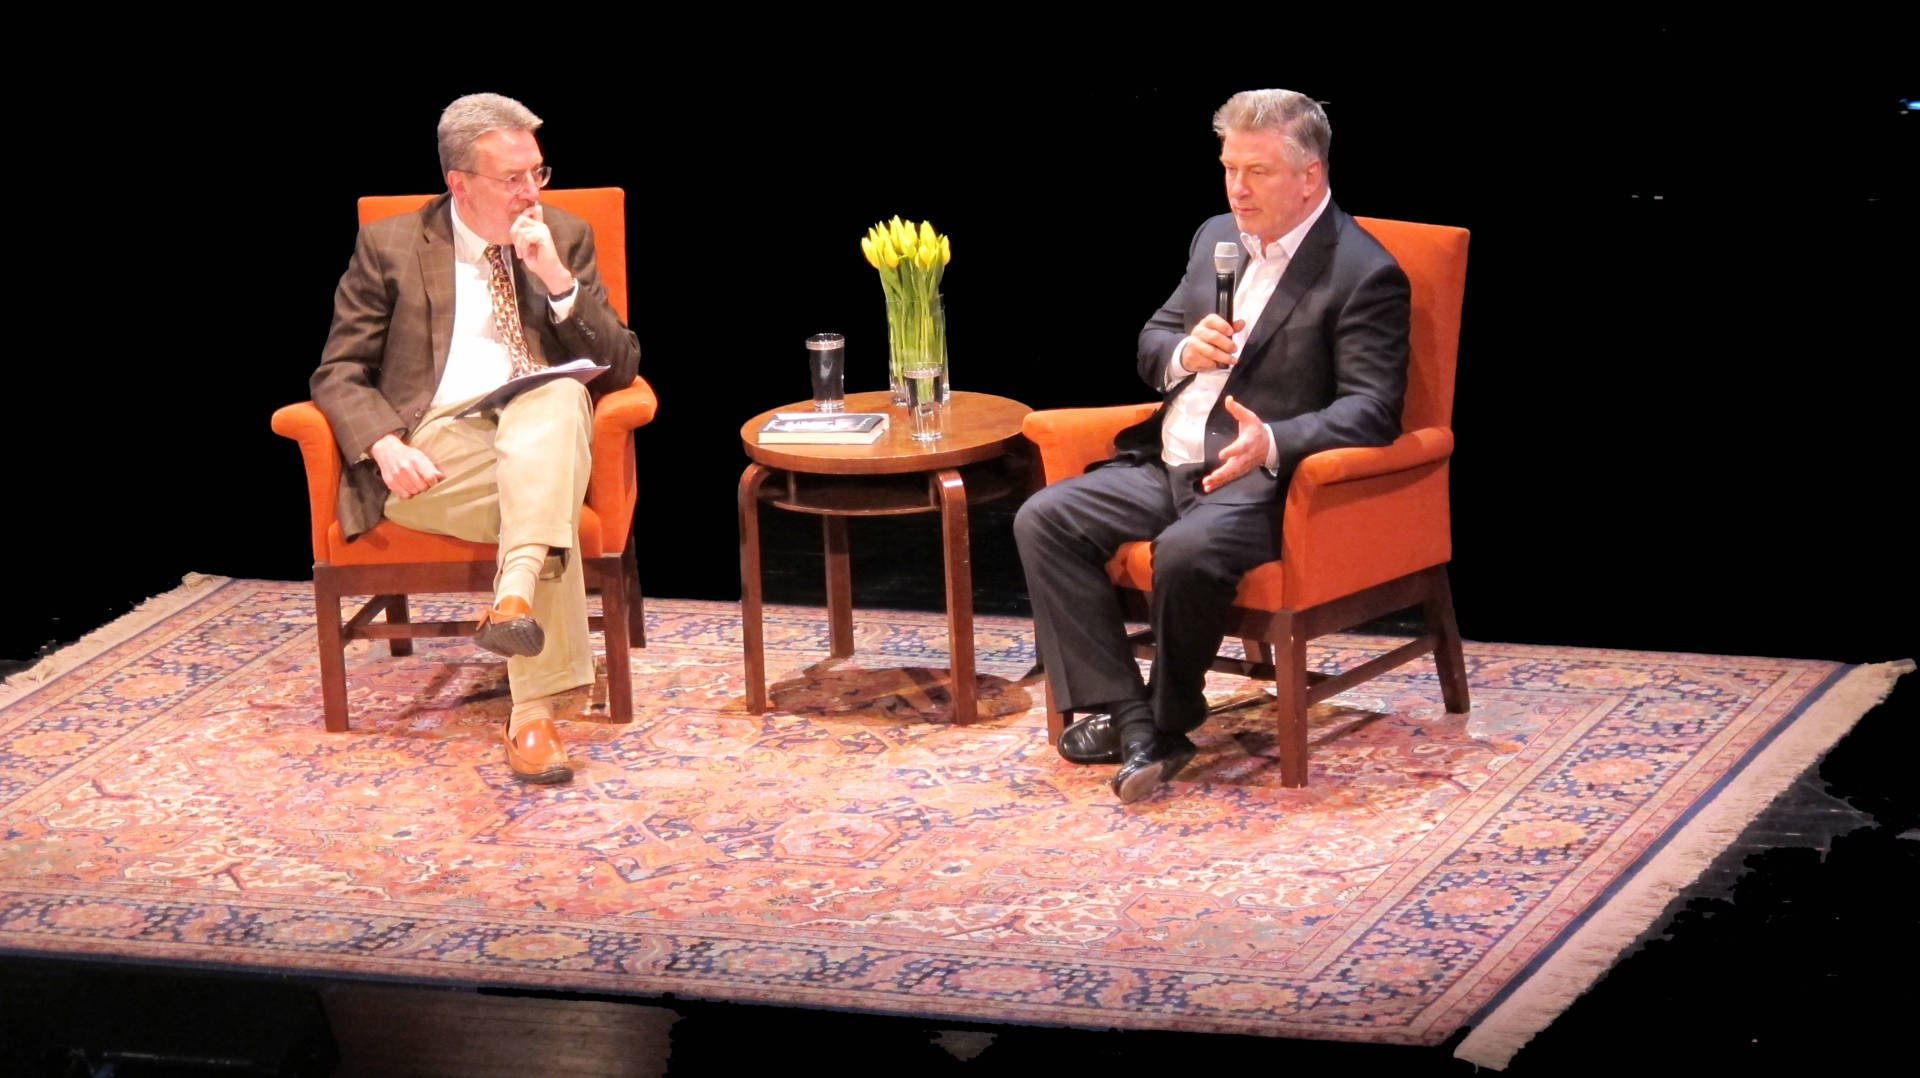 Alec Baldwin in conversation with Steven Winn at San Francisco's Nourse Theater on April 13, 2017.